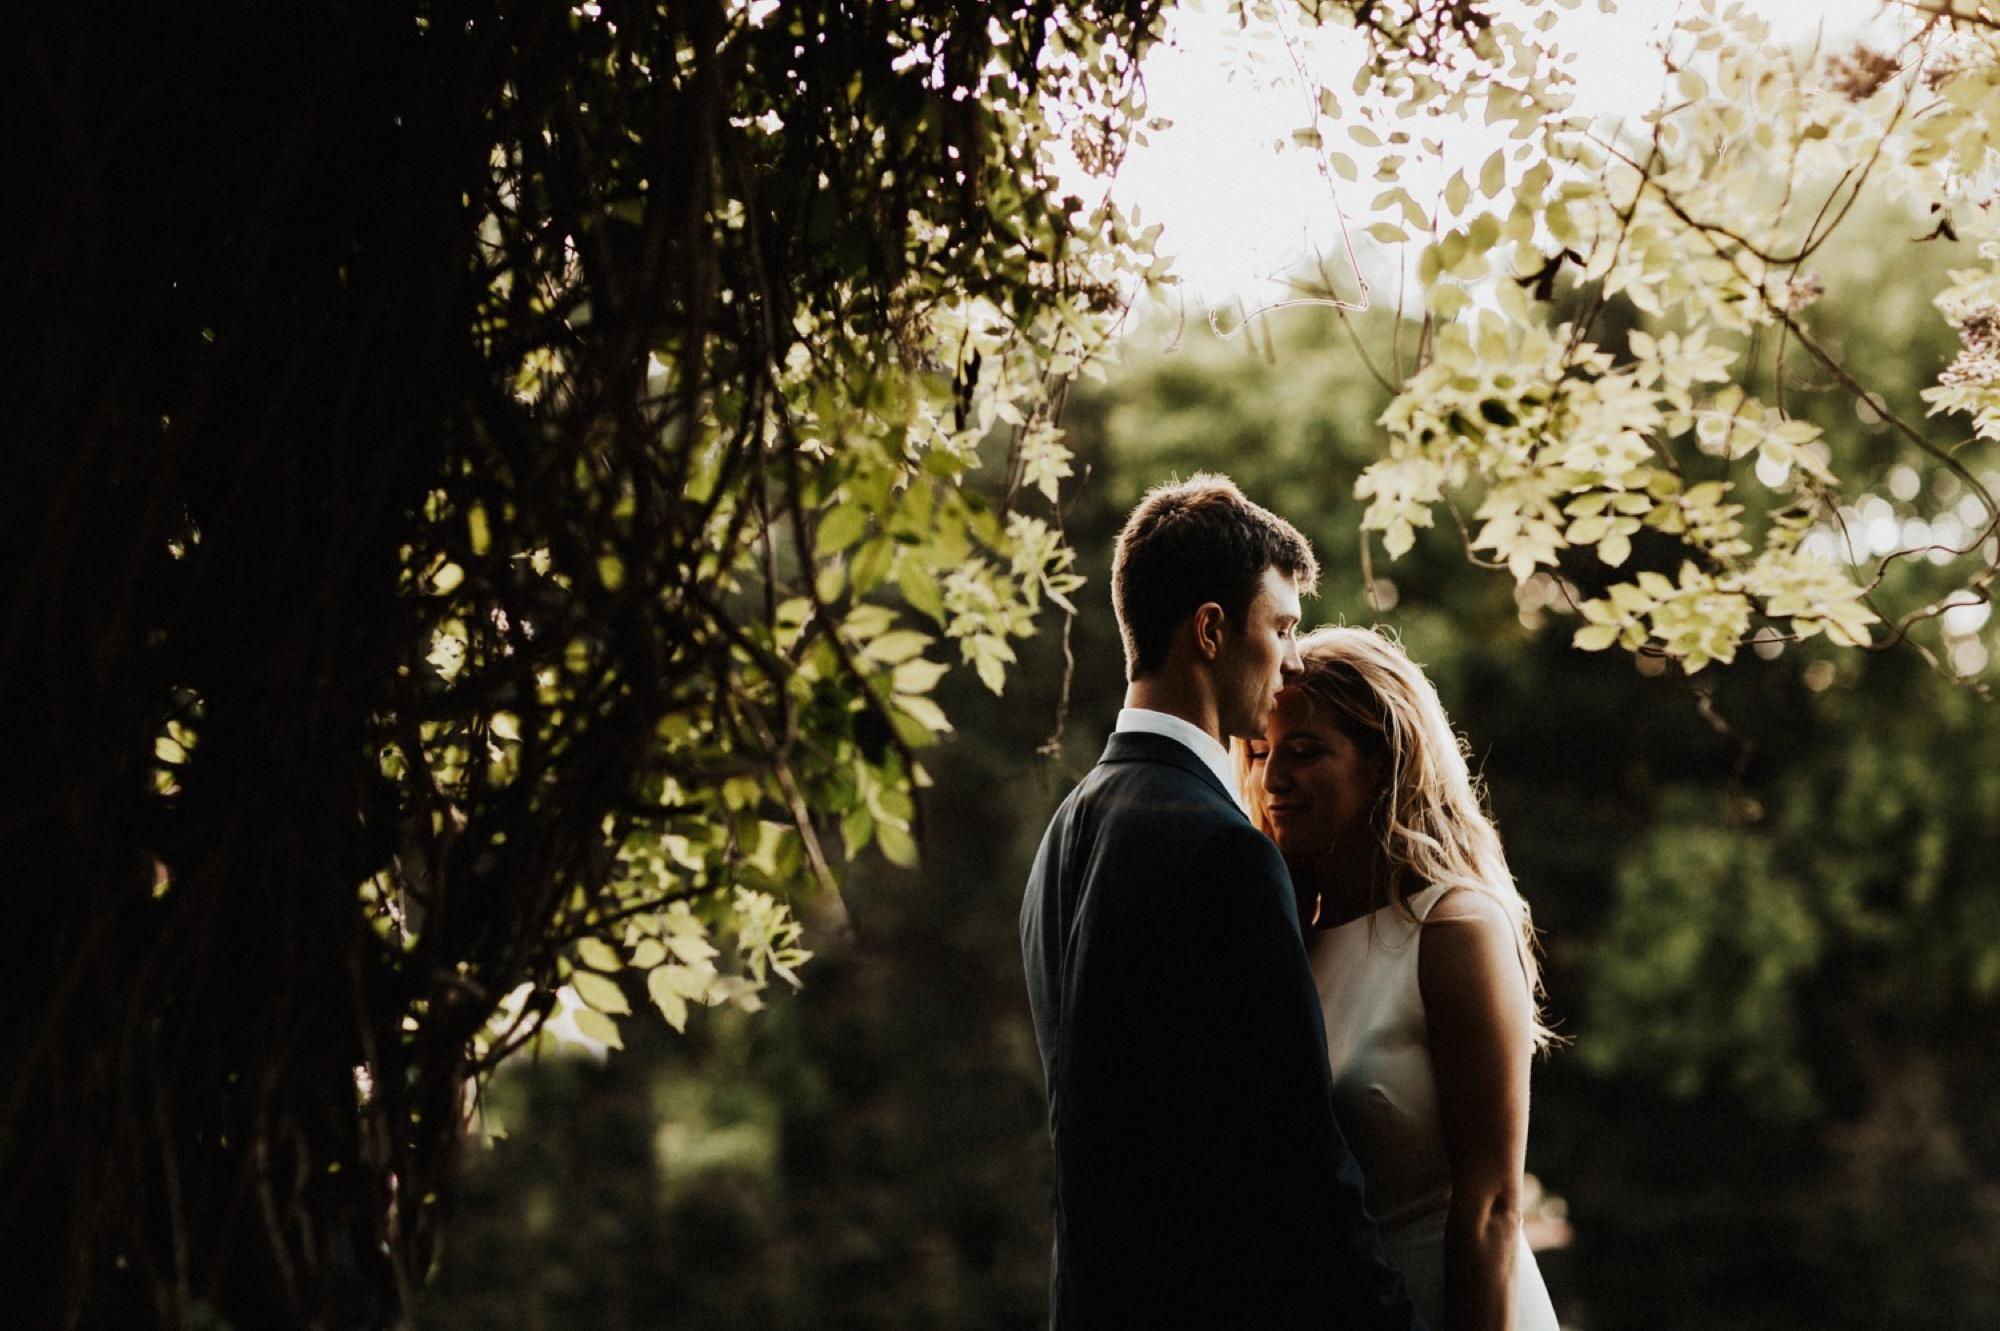 intimate moment between bride and groom at Stonehaven Barn Wedding